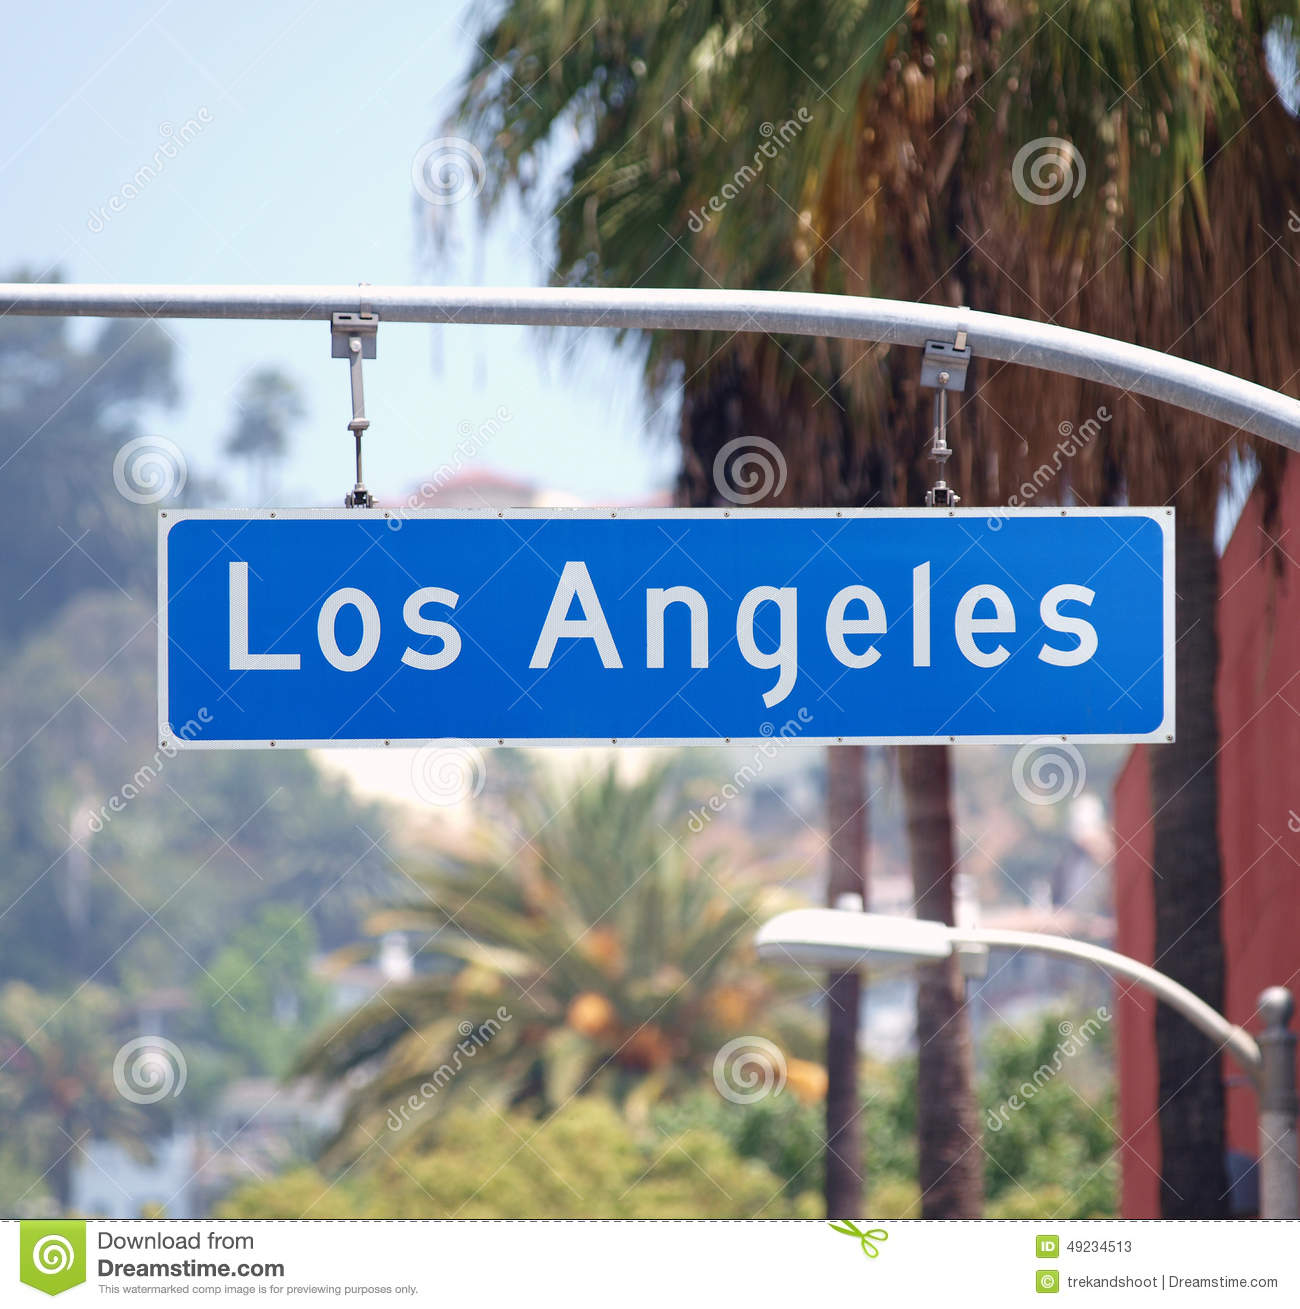 Plaque de rue de los angeles image stock image du for De signs